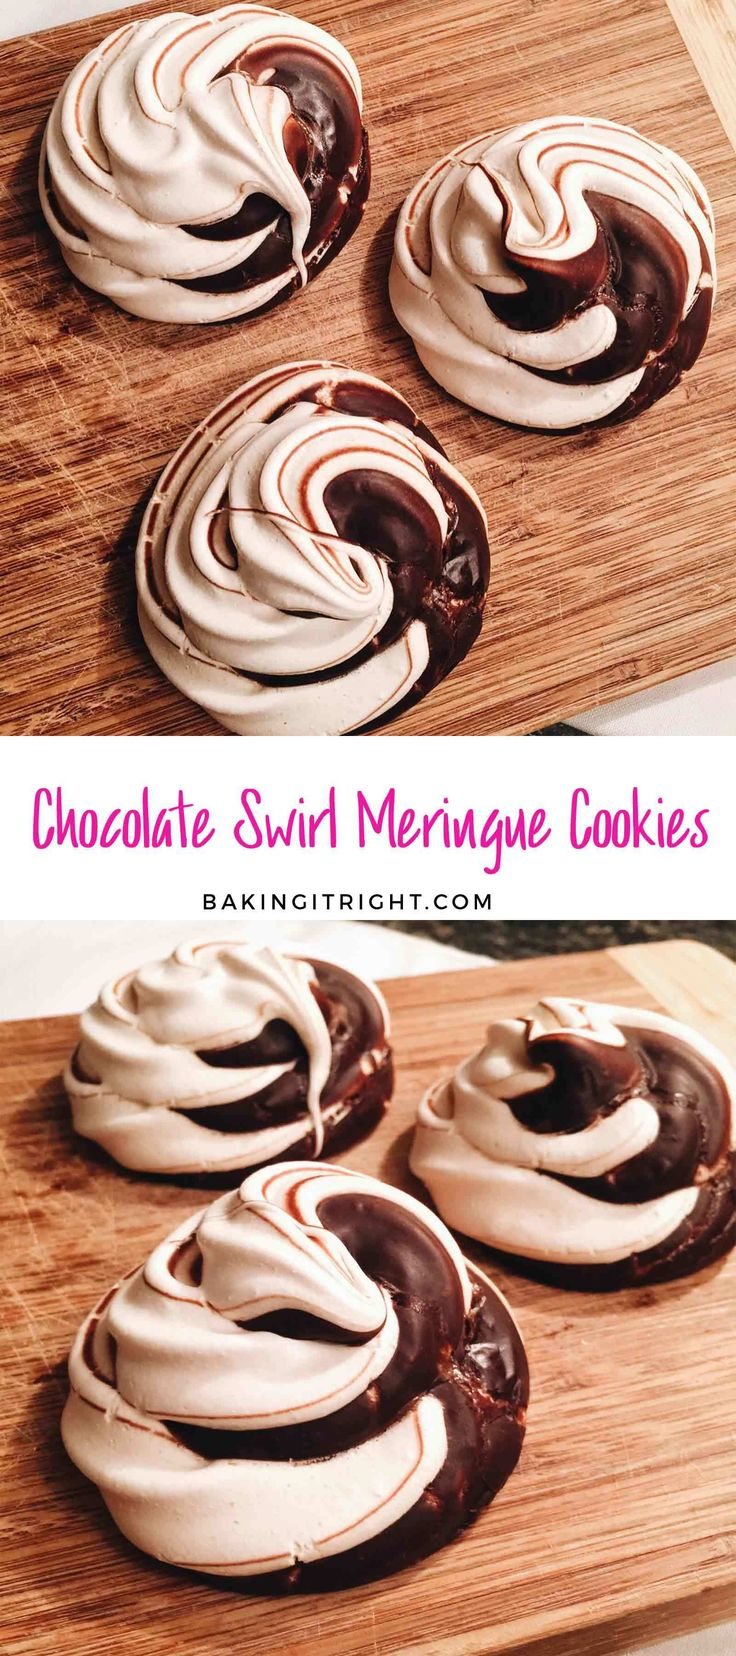 Chocolate Swirl Meringue Cookies are an impressive and easy dessert to make for guests!